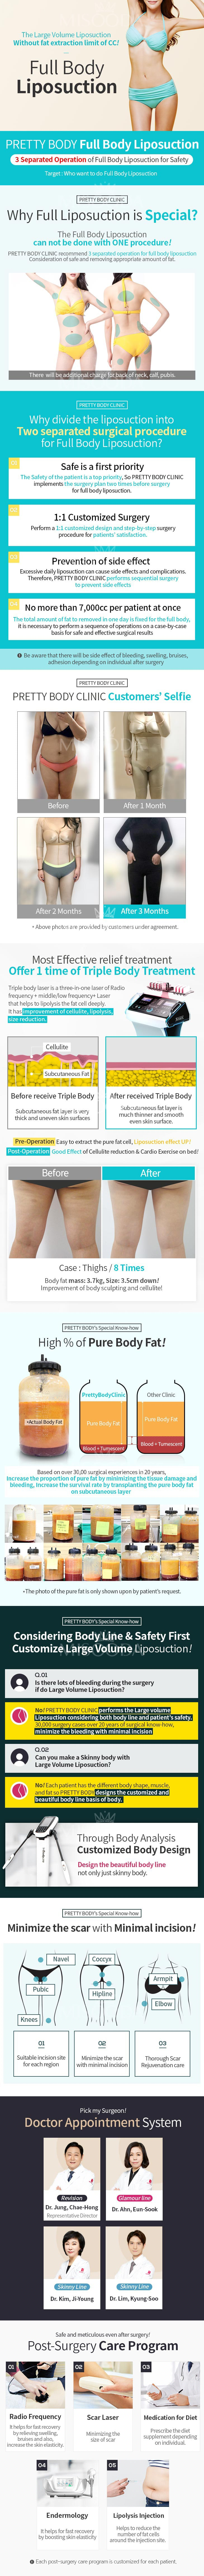 PRETTY BODY ClLINIC : Full Body Liposuction